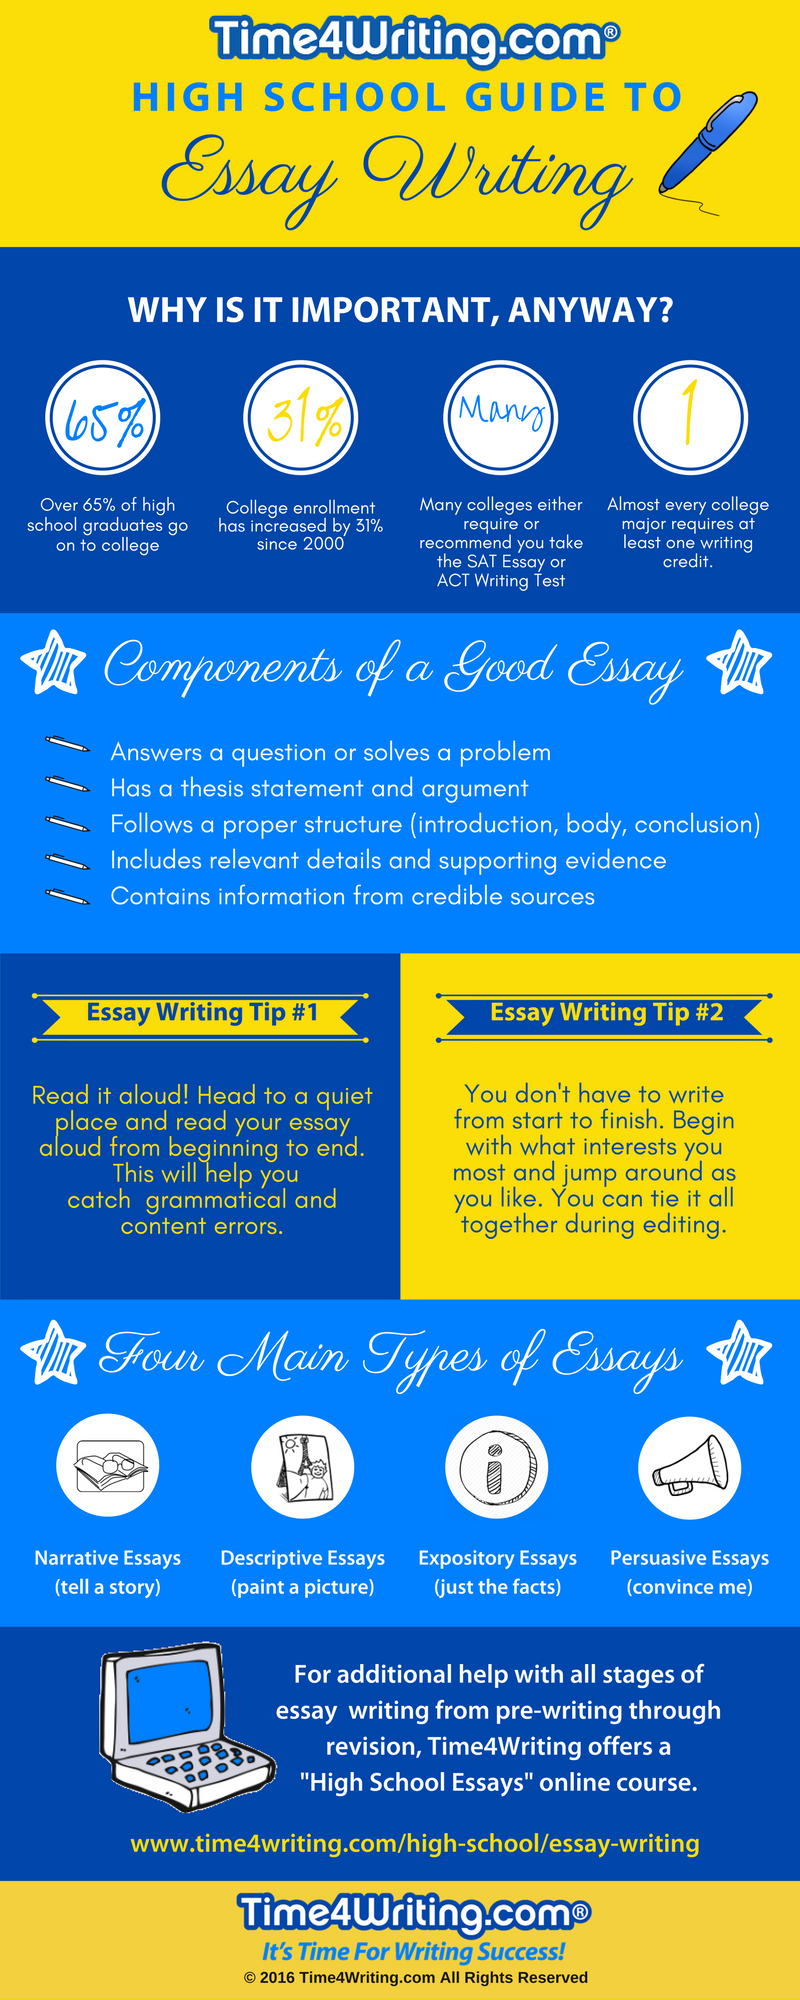 high school essay writing infographic